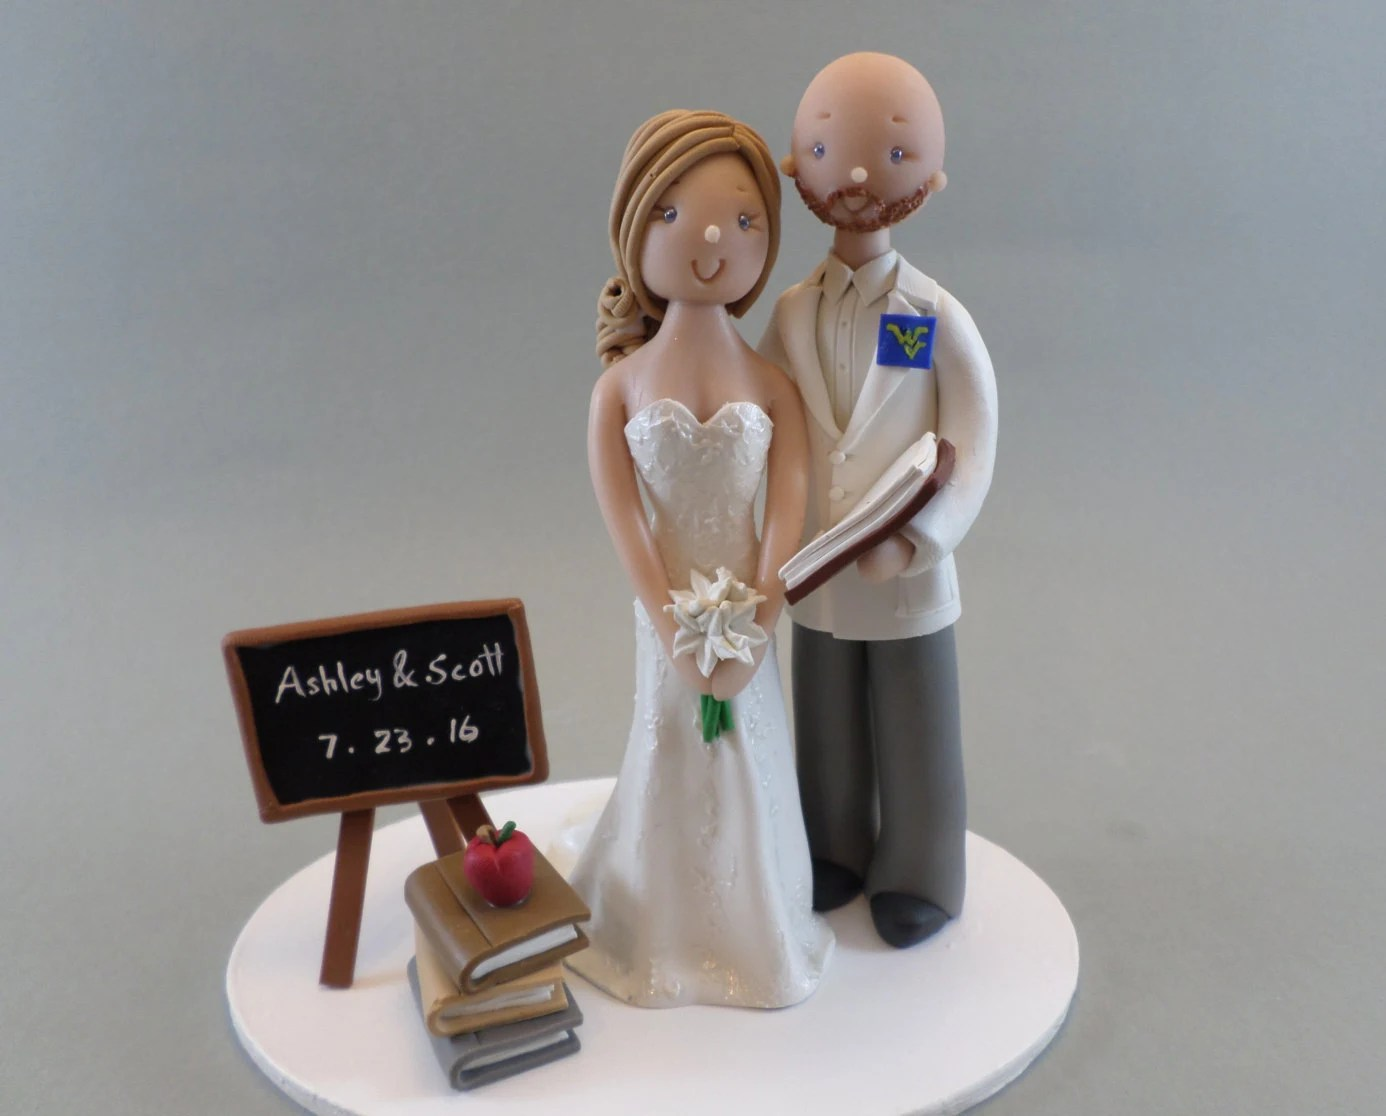 Policeman And Nurse Customized Wedding Cake Topper By Mudcards